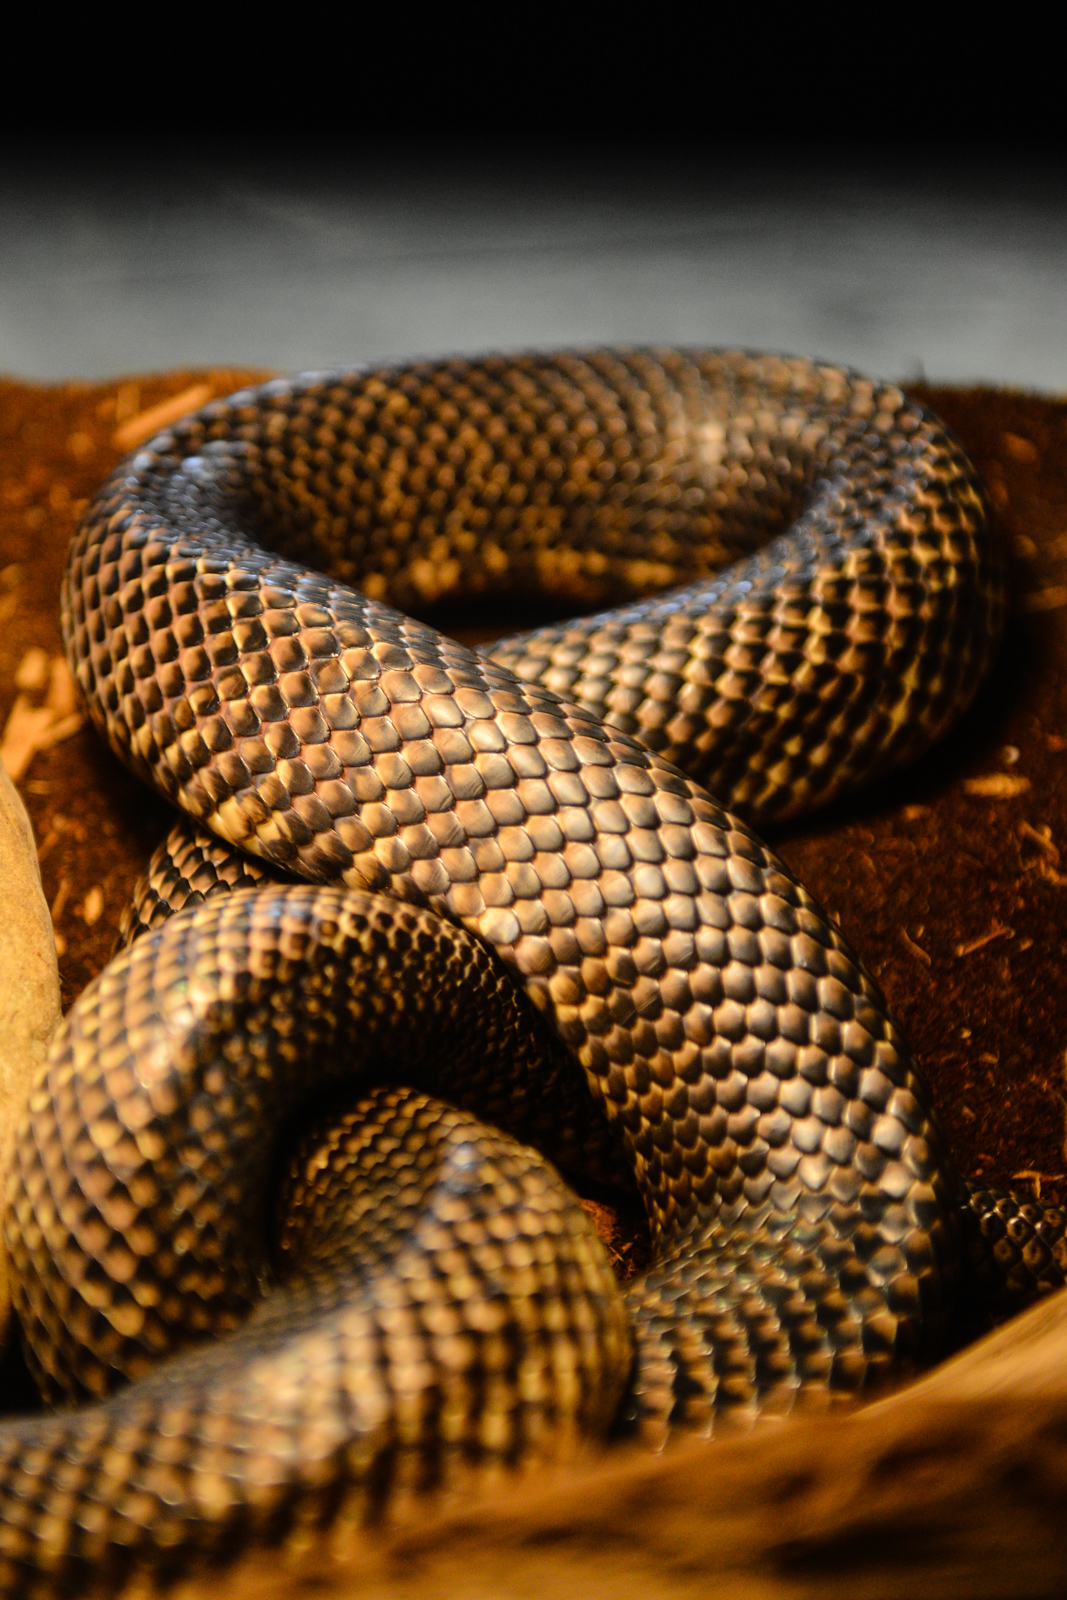 If it's a little good ol' fashioned fun you're after, Monroe's very own Reptile Zoo is a foolproof way to get your kicks. From a two headed turtle to an albino alligator,  there's lots to see here. The Reptile Zoo is 35 miles northwest of Seattle and is jam packed with peculiarly named snakes (you can't beat Ekans and Draco), spiders (one resident here goes by the name of Lawfunduh), soft shelled turtles and more. More info, visit their website. (Image: Chona Kasinger / Seattle Refined)